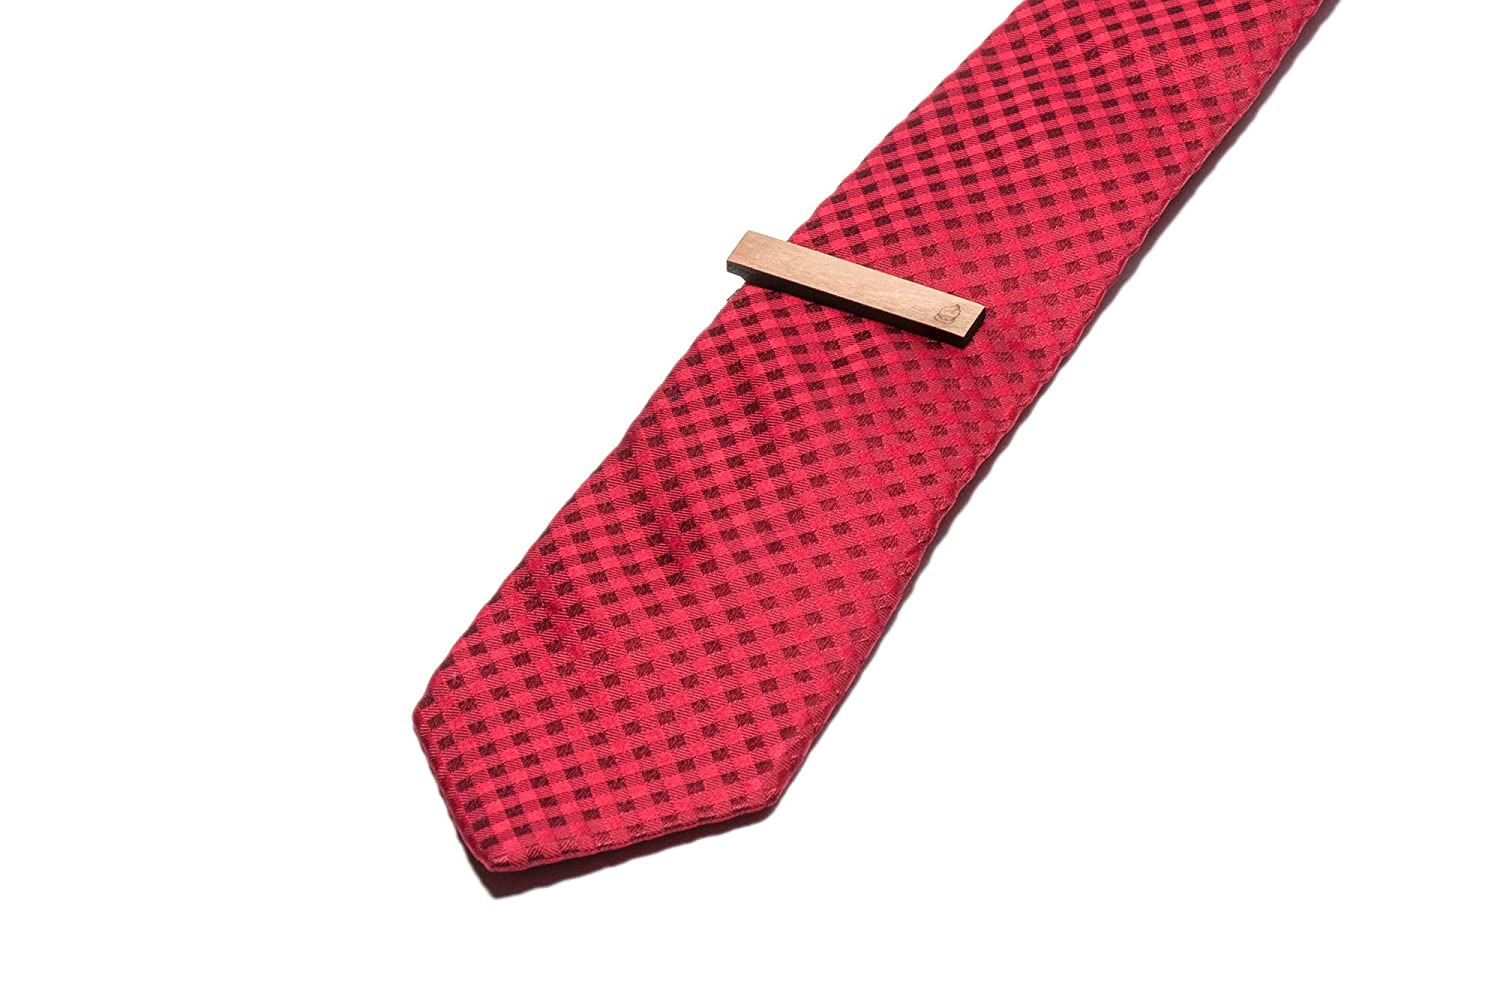 Cherry Wood Tie Bar Engraved in The USA Wooden Accessories Company Wooden Tie Clips with Laser Engraved Cream Puff Design